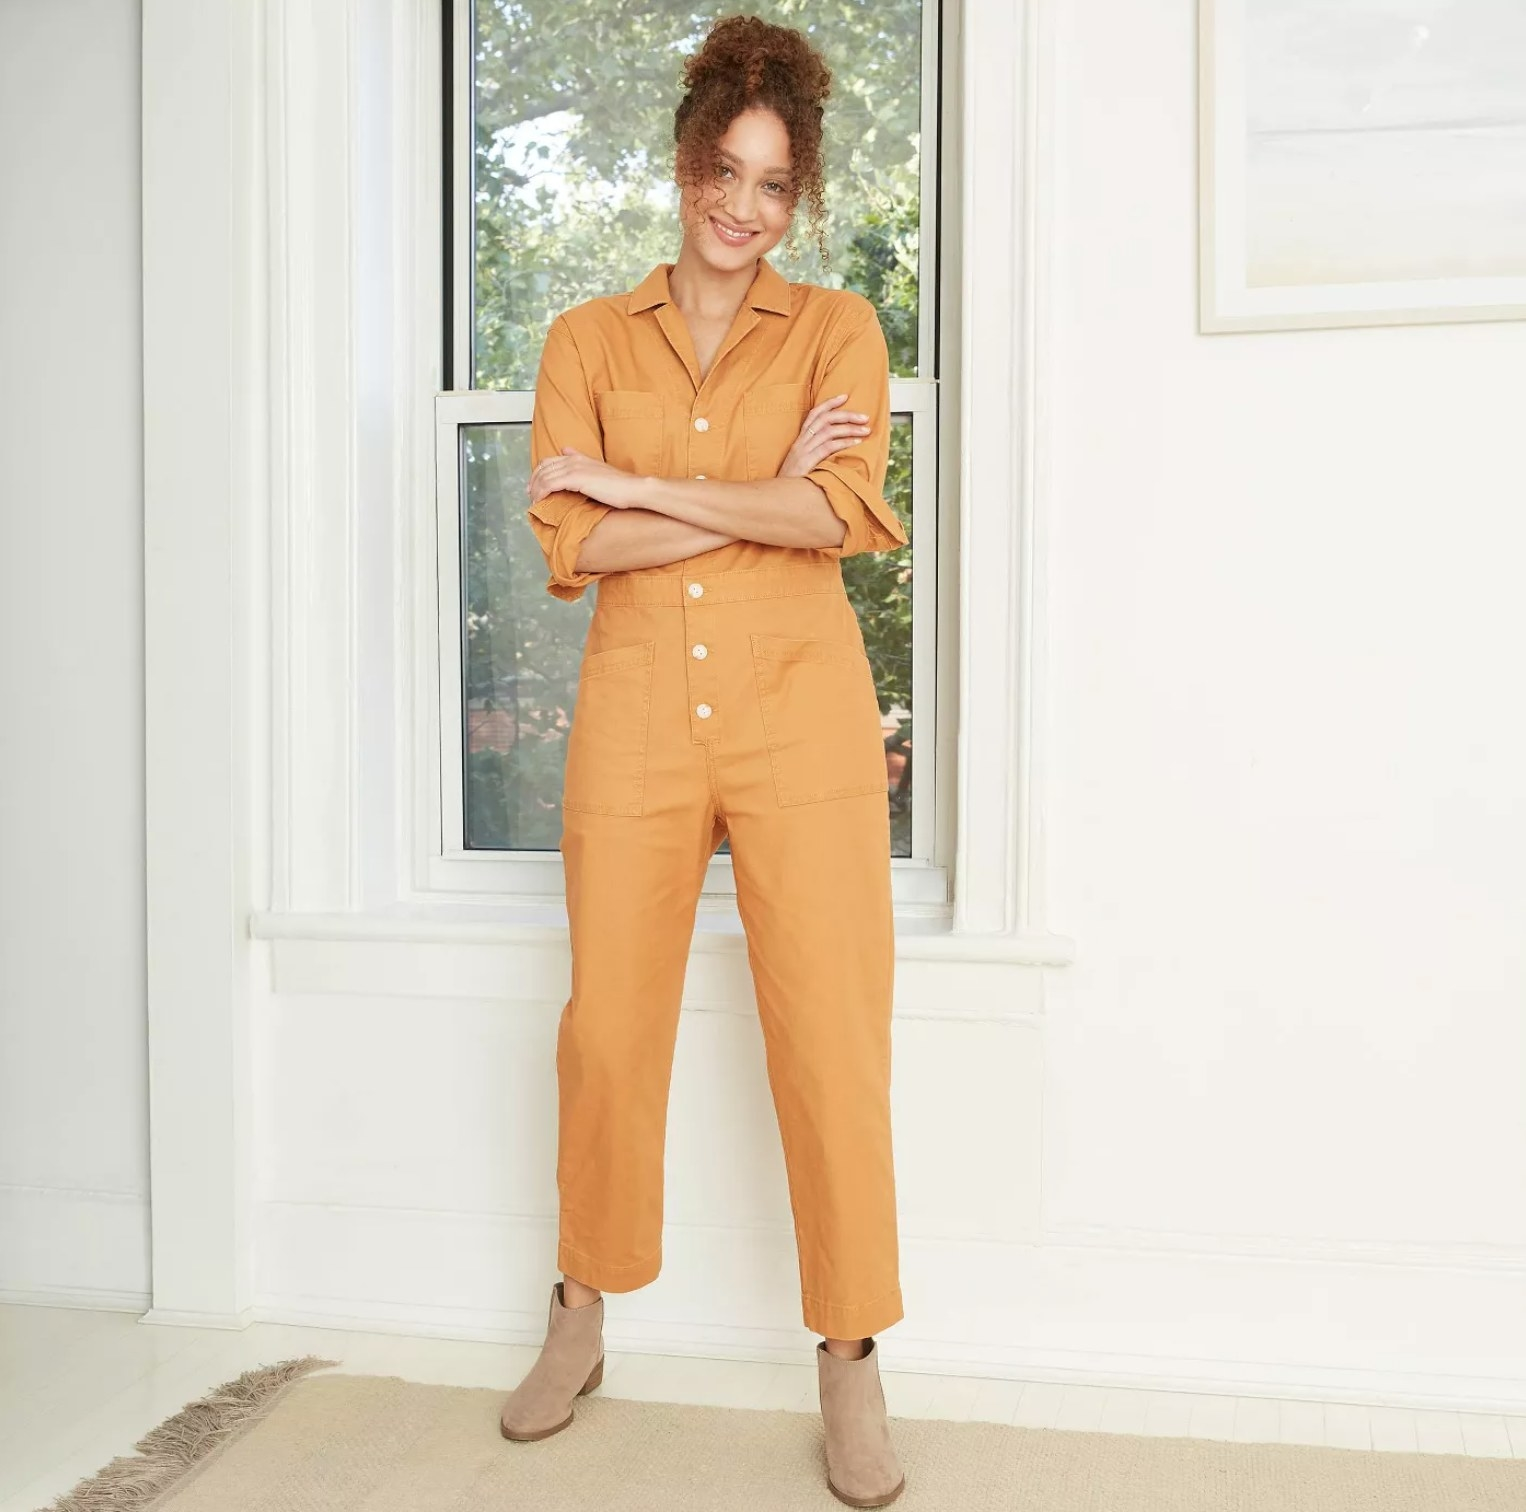 Model wearing the jumpsuit in yellow